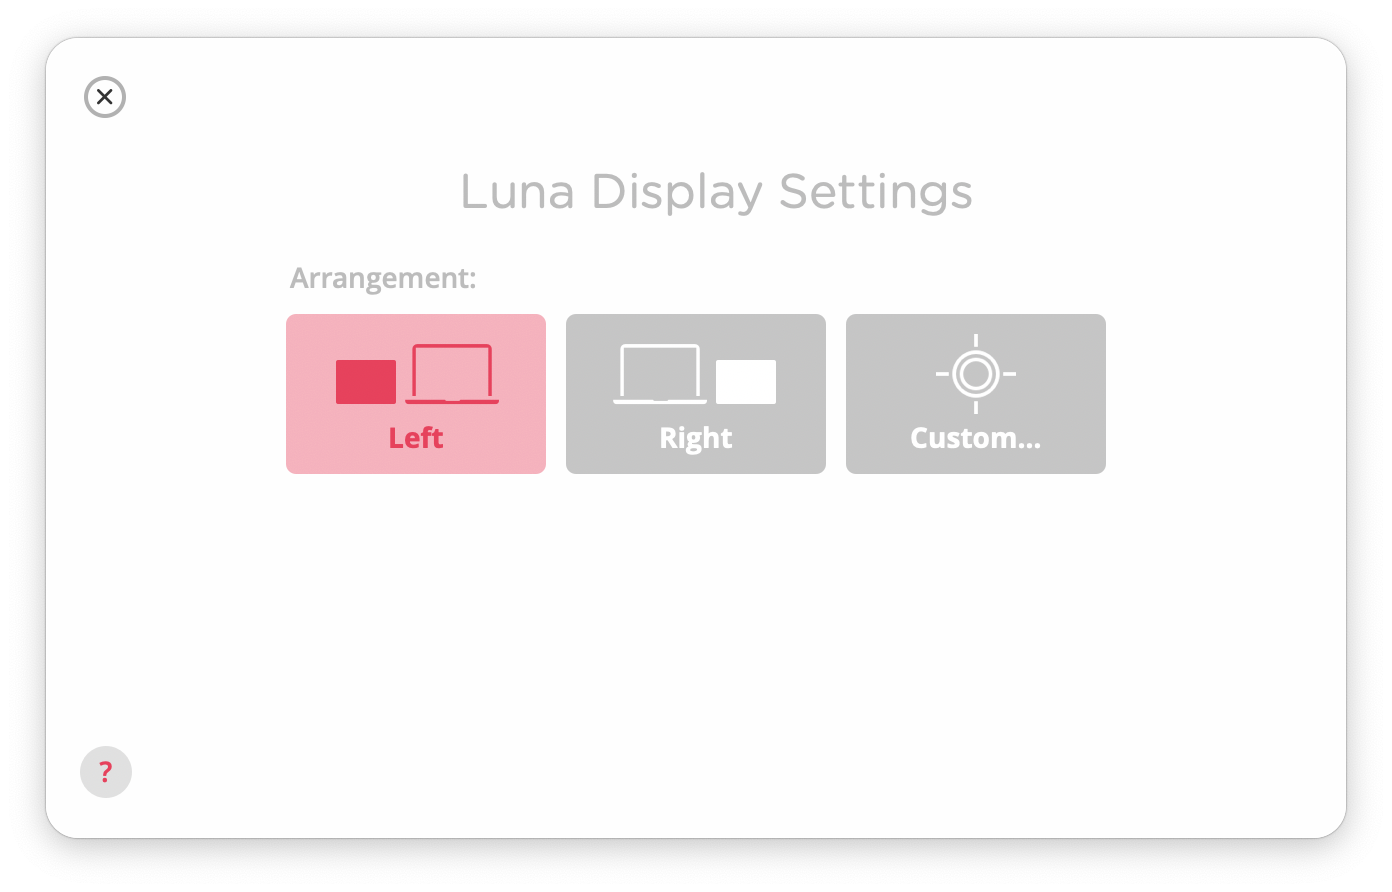 AstroHQ's Luna Display Dongle Turns a Mac into a Second